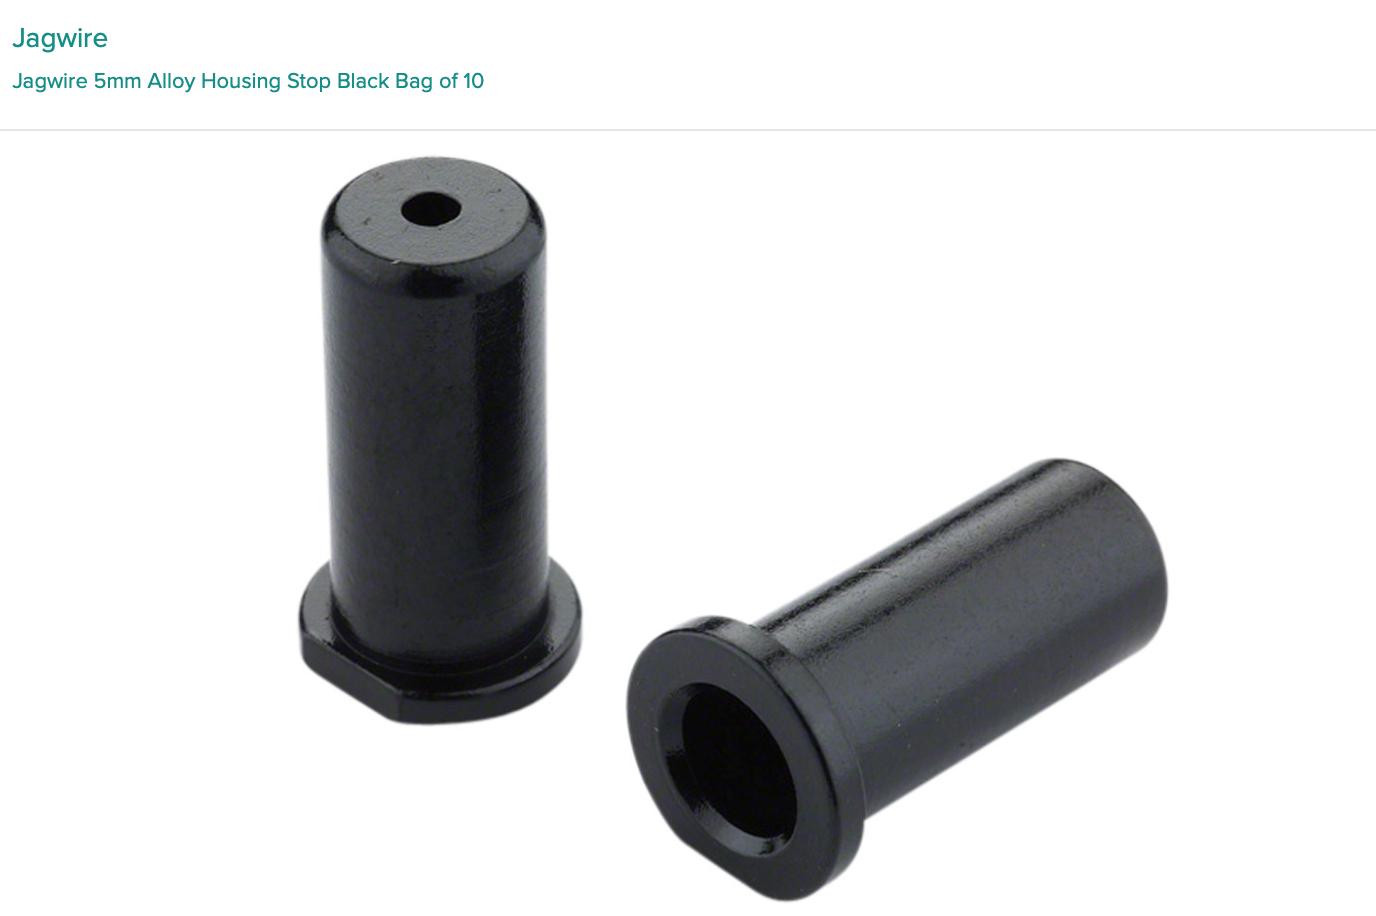 Jagwire Jagwire 5mm Alloy Housing Stop Black Bag of 10